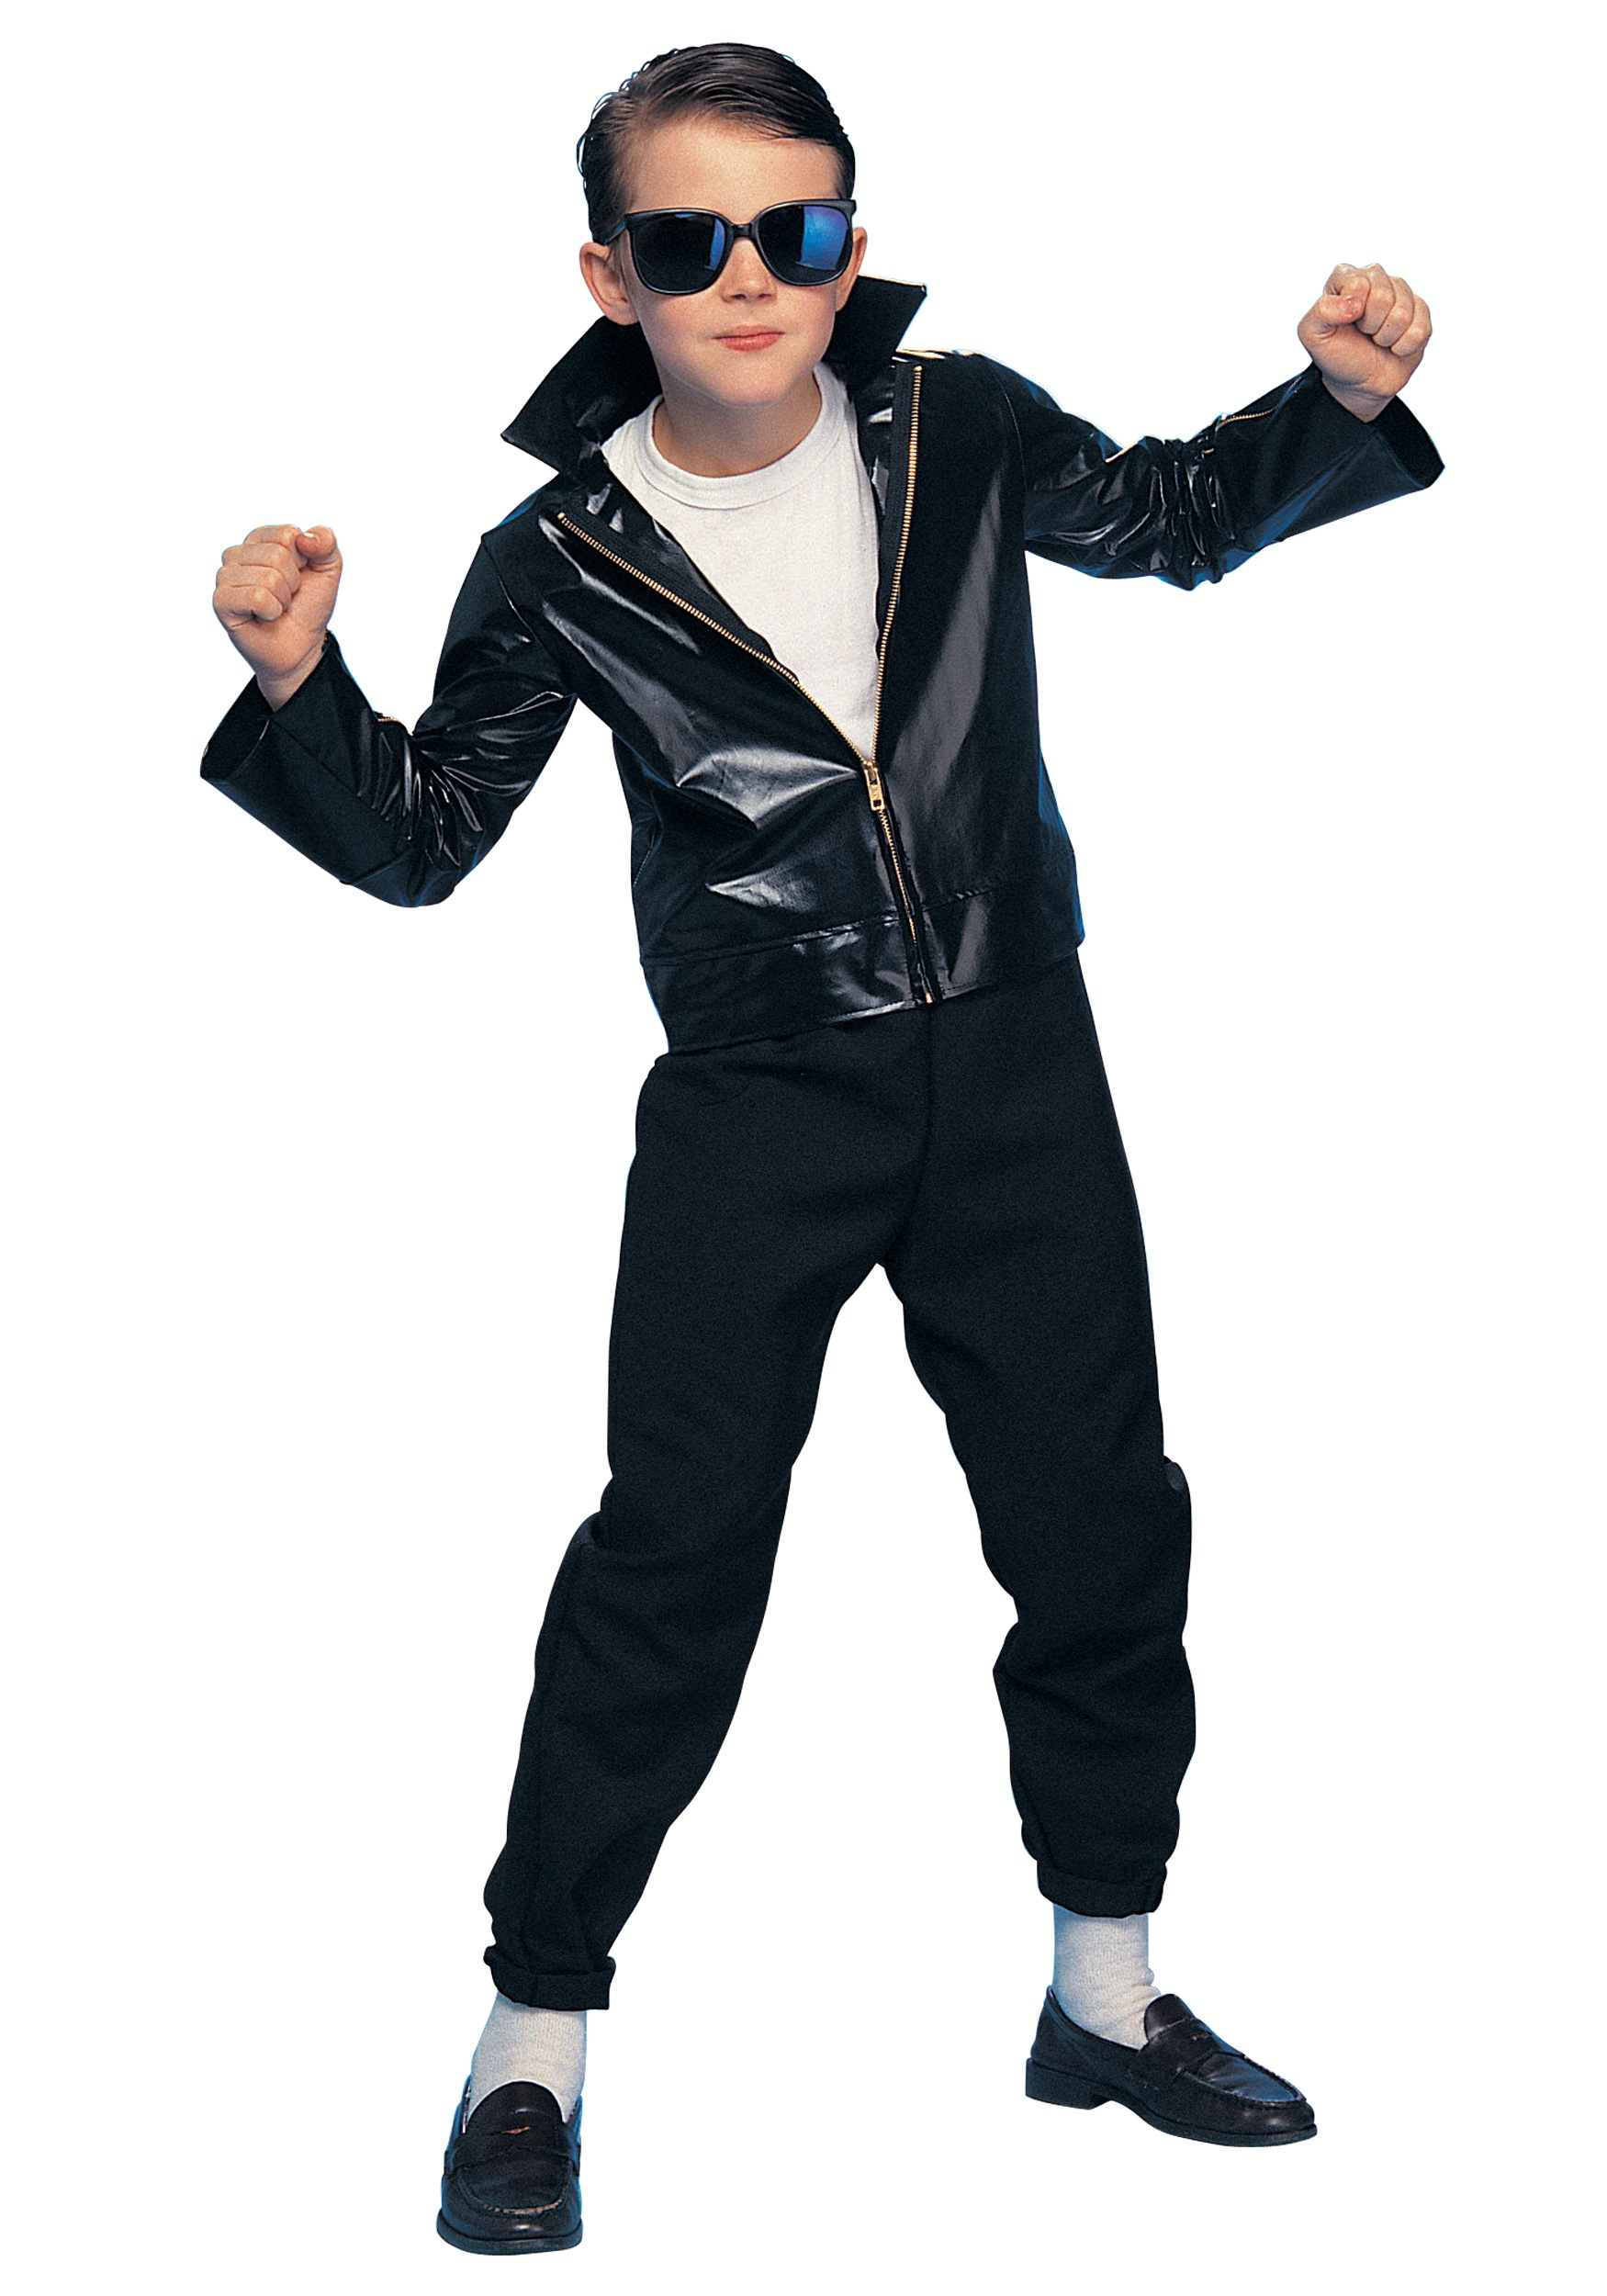 Kids Greaser Costume  sc 1 st  Halloween Costumes & Kids Greaser Costume - Halloween Costumes